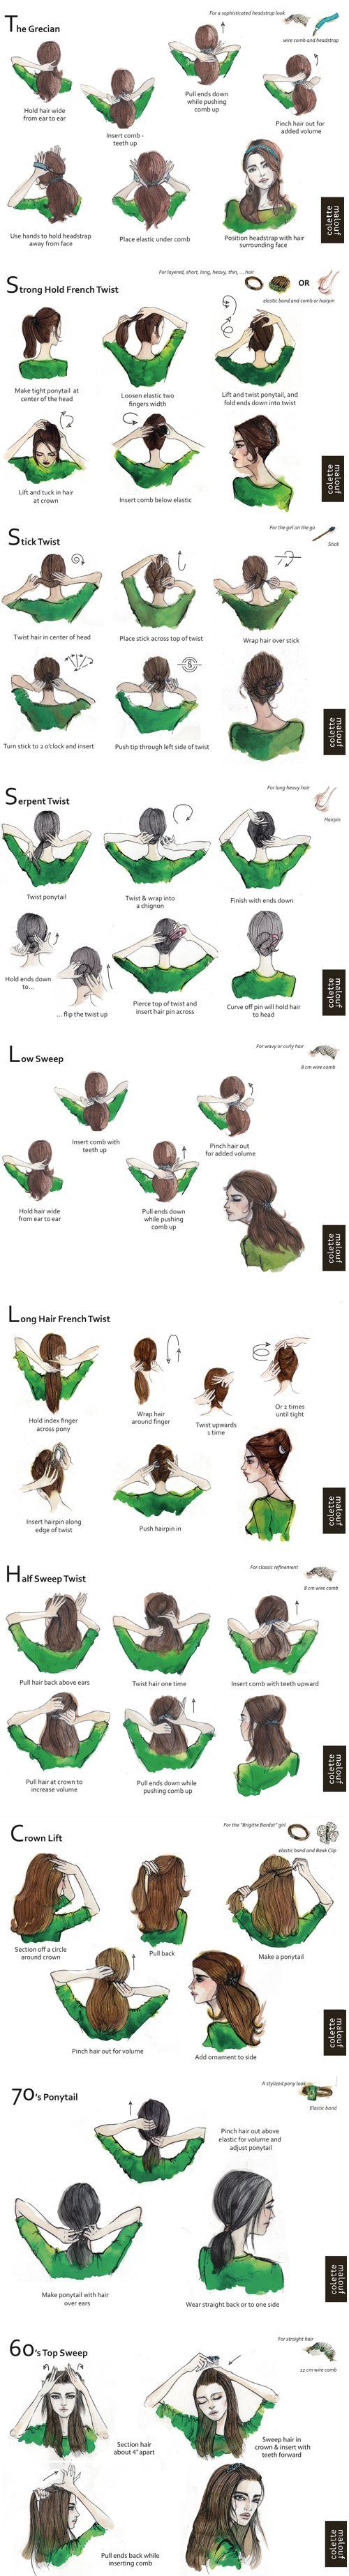 Have you seen these terrific hairstyle illustrations? All from Colette Malouf, who makes gorgeous hair accessories.